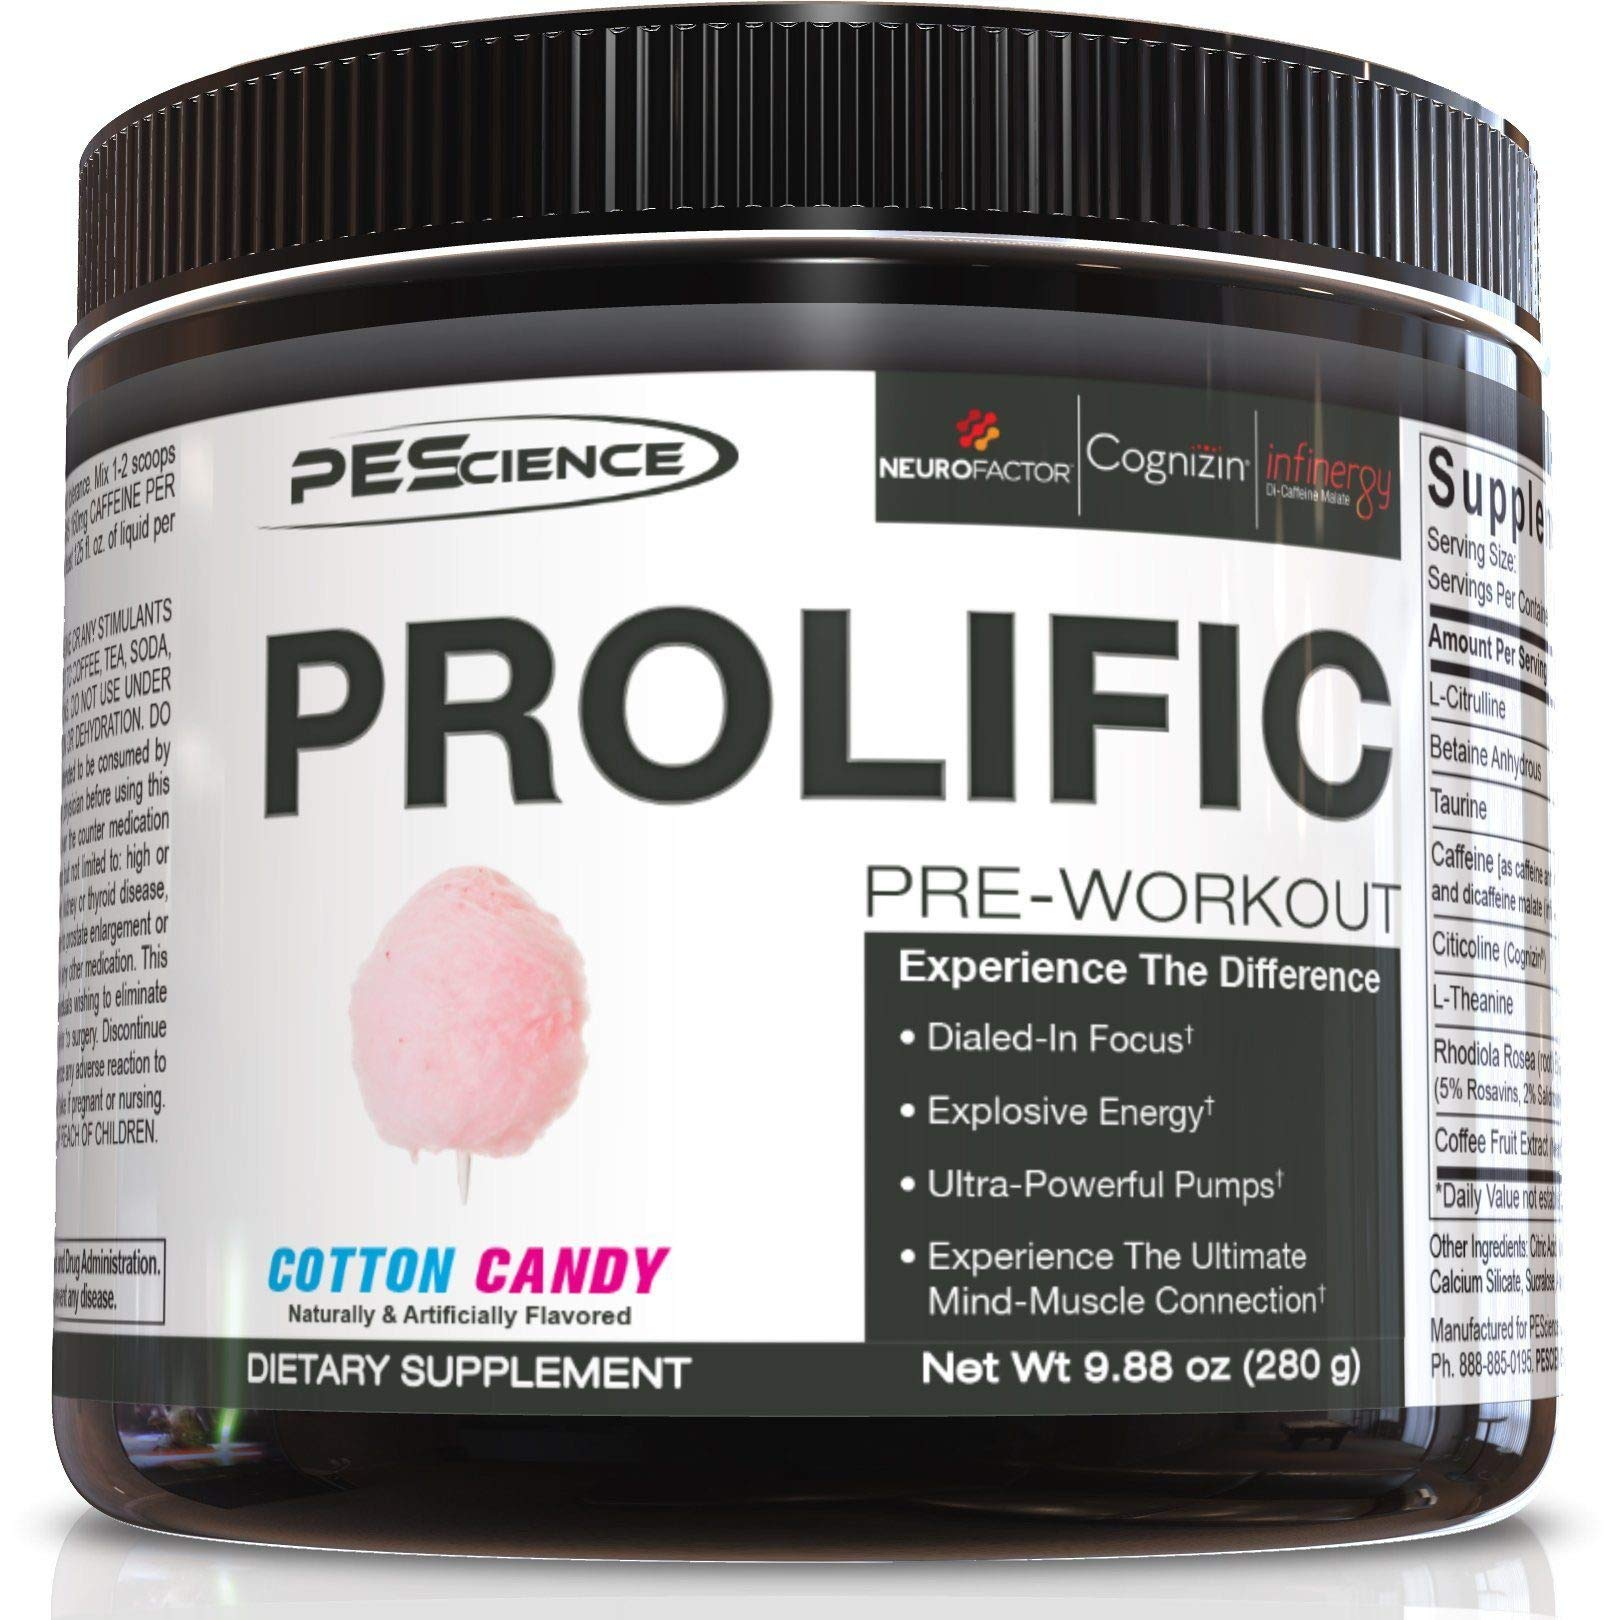 PEScience Prolific Preworkout Powder, Cotton Candy, 40 Scoops by PEScience